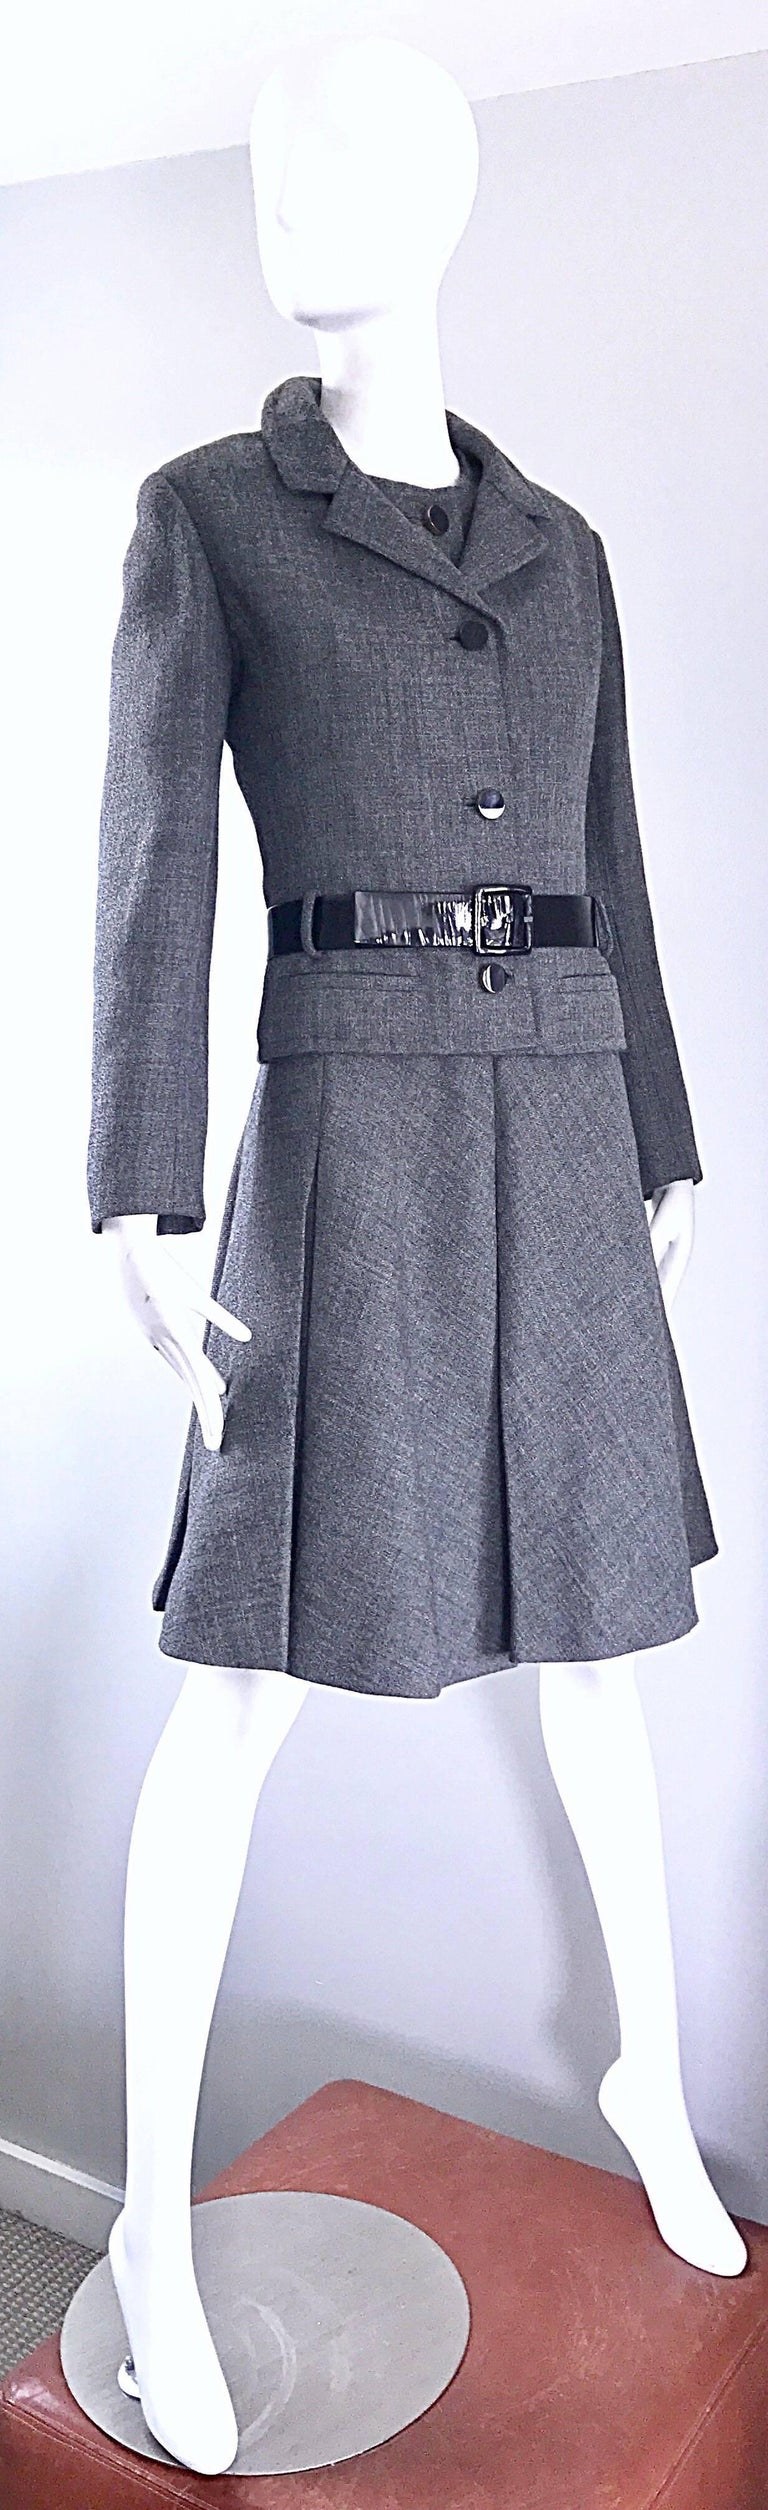 Nina Ricci Haute Couture Vintage Grey Wool Dress and Jacket Ensemble, 1960s   For Sale 1